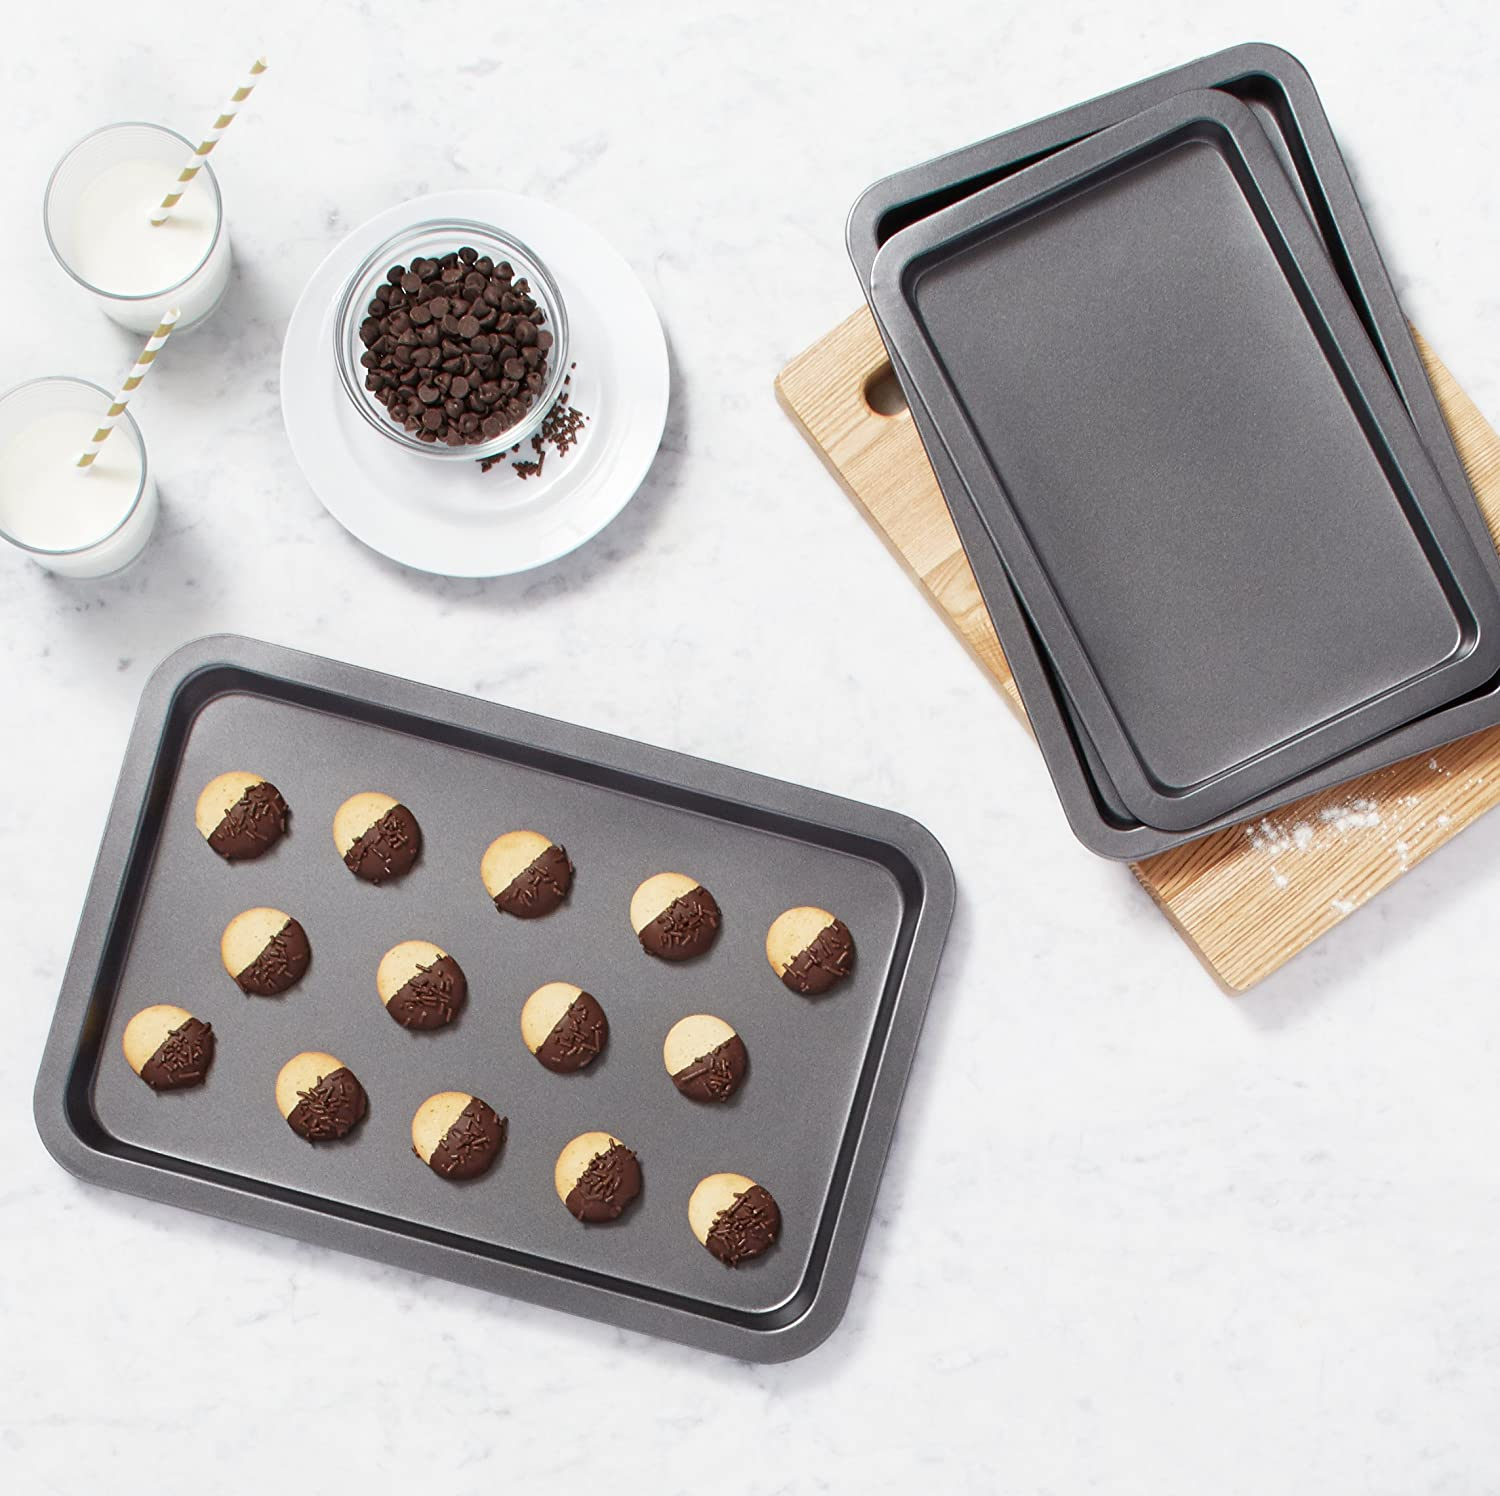 Baking Pan | Discount Kitchenware Items | Under $50 Gift Ideas For People Who Love To Cook